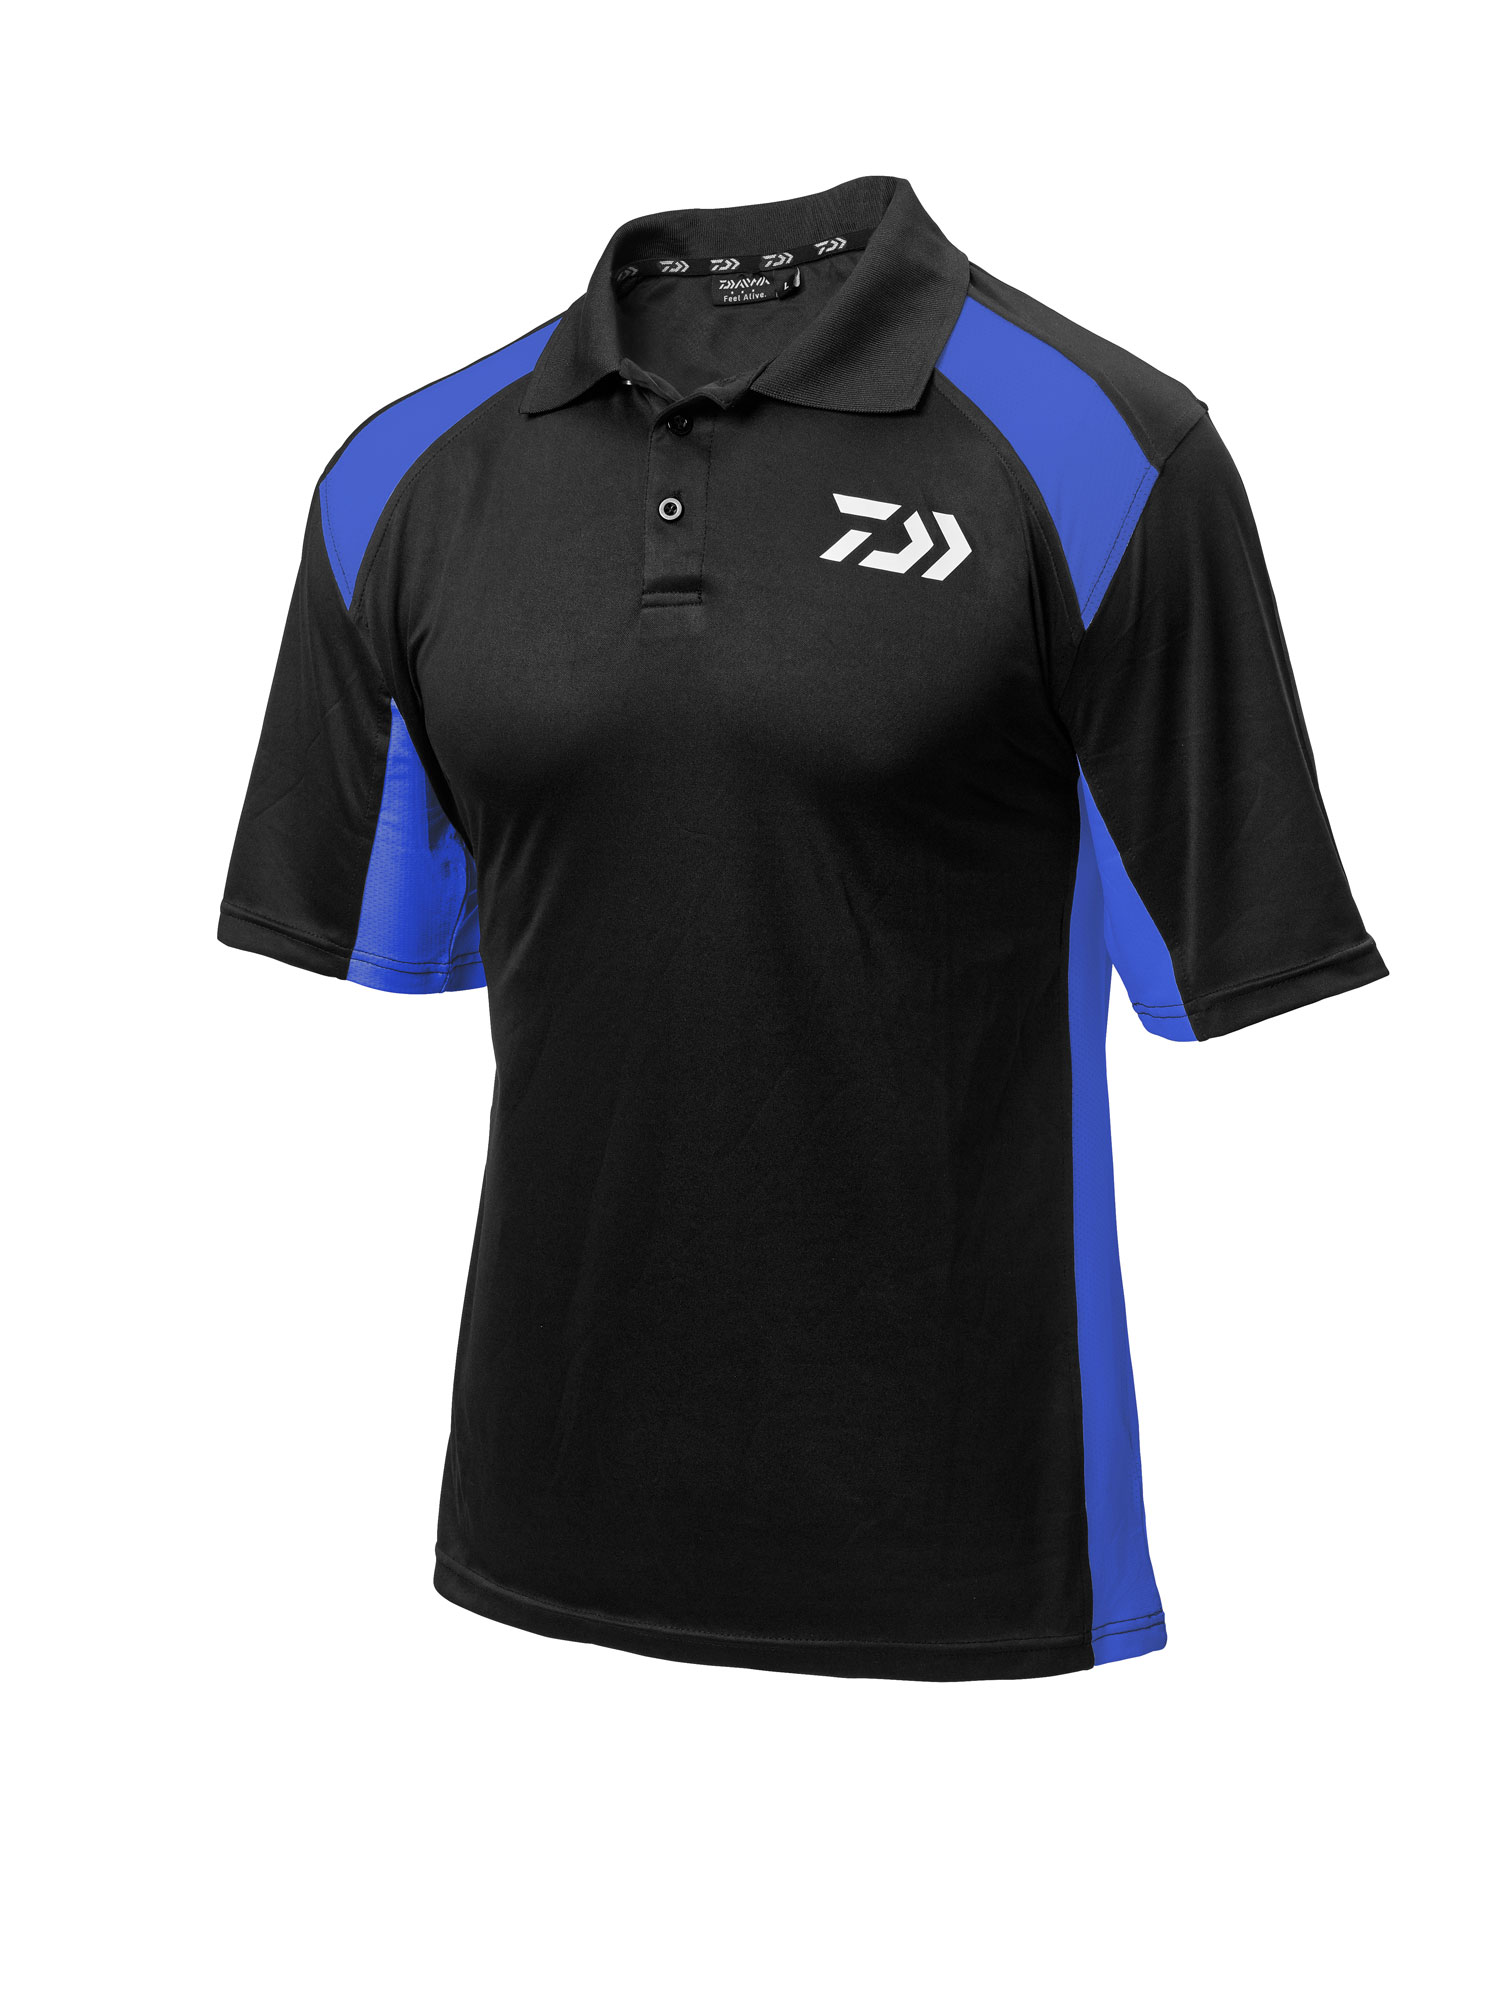 b859744c7c6 ... reduced sentinel new daiwa polo shirts black red black white black blue  0f936 91238